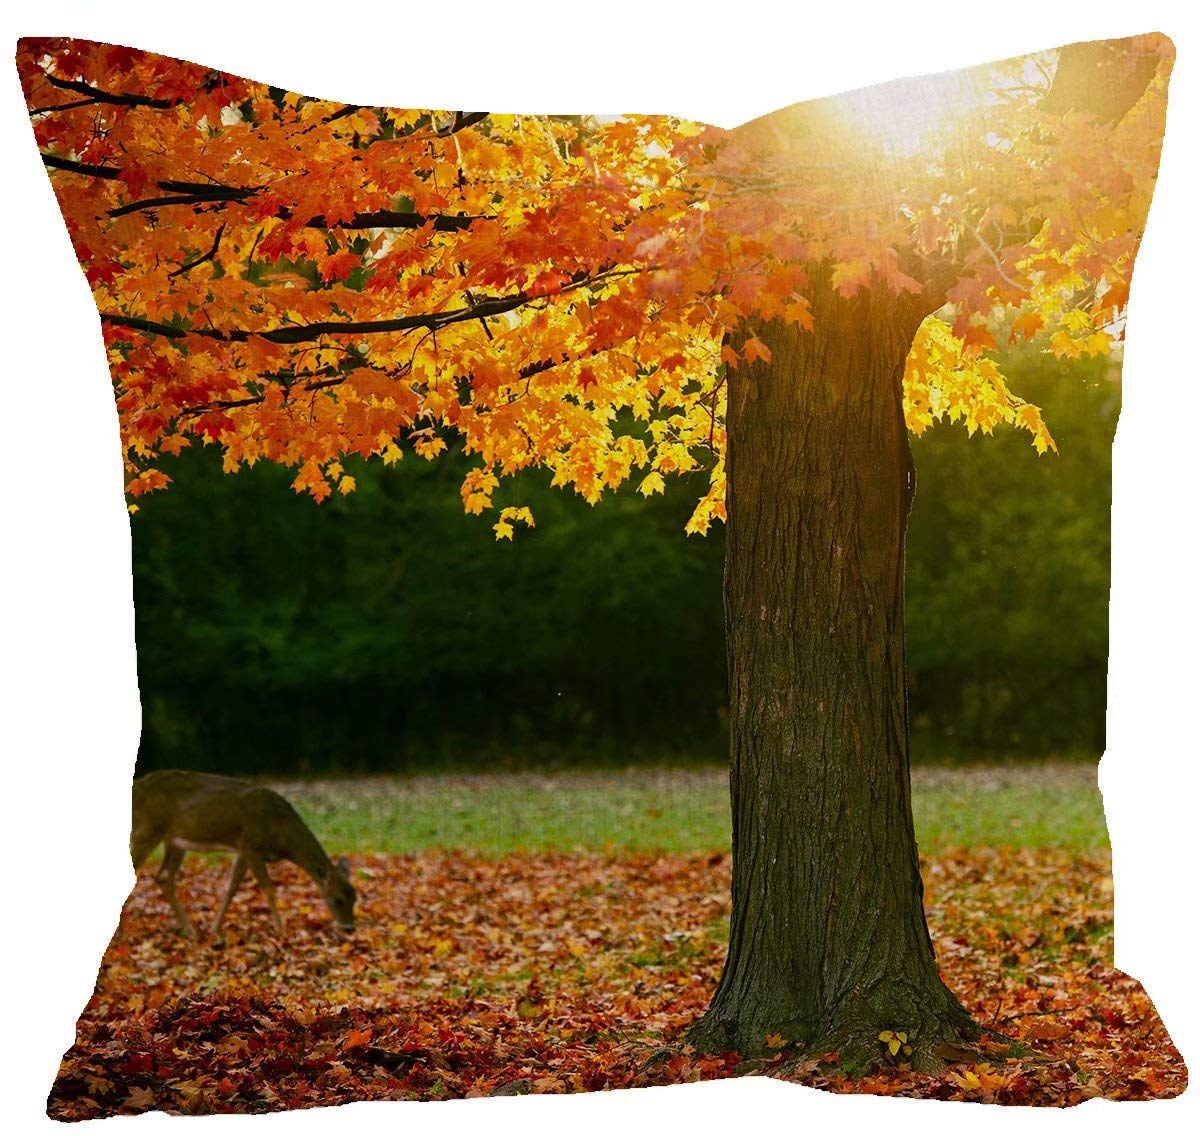 ShineSnow 2-Pack Set of 2 Autumn Tree Maple Fall Leaves Golden Sunlight Seasonal Throw Pillow Cushion Cover Case 18 x 18 Cotton Linen Square Zippered Pillowcase for Sofa Bed Home Decor